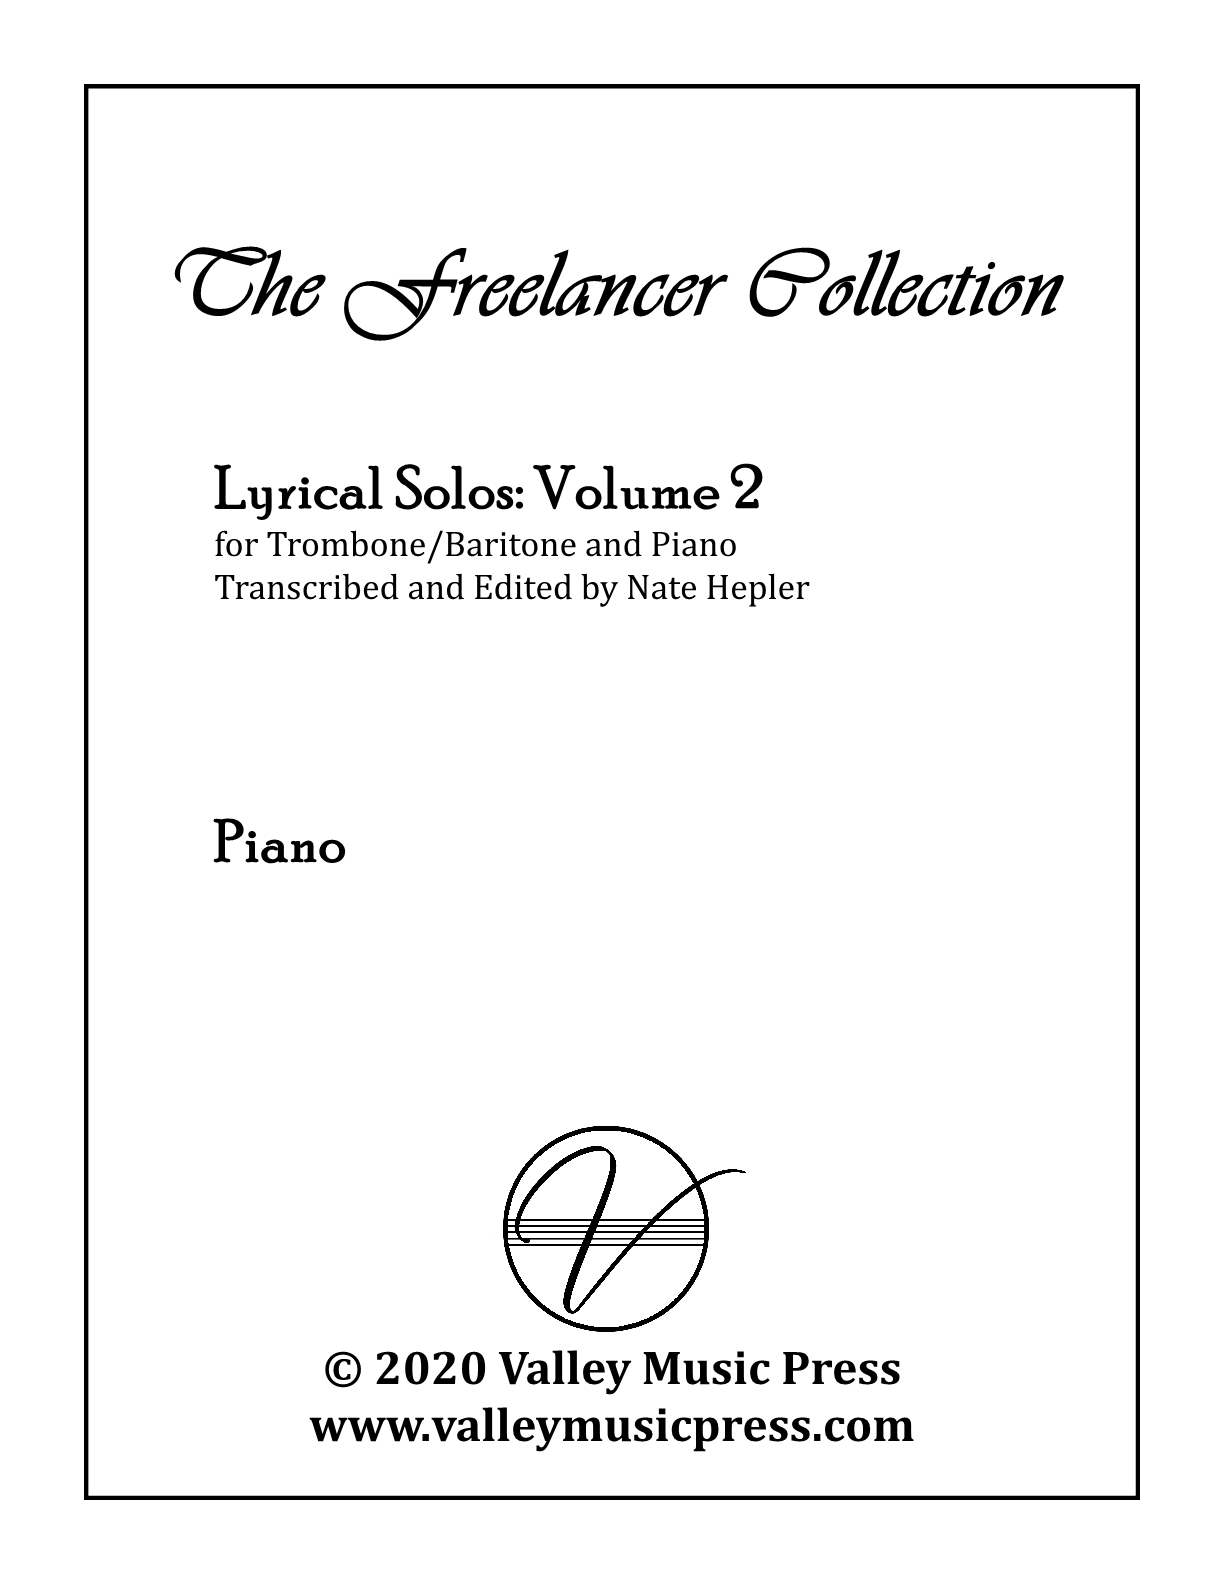 Hepler - Freelancer Collection Lyrical Solos Vol 2 (Trb & Piano)